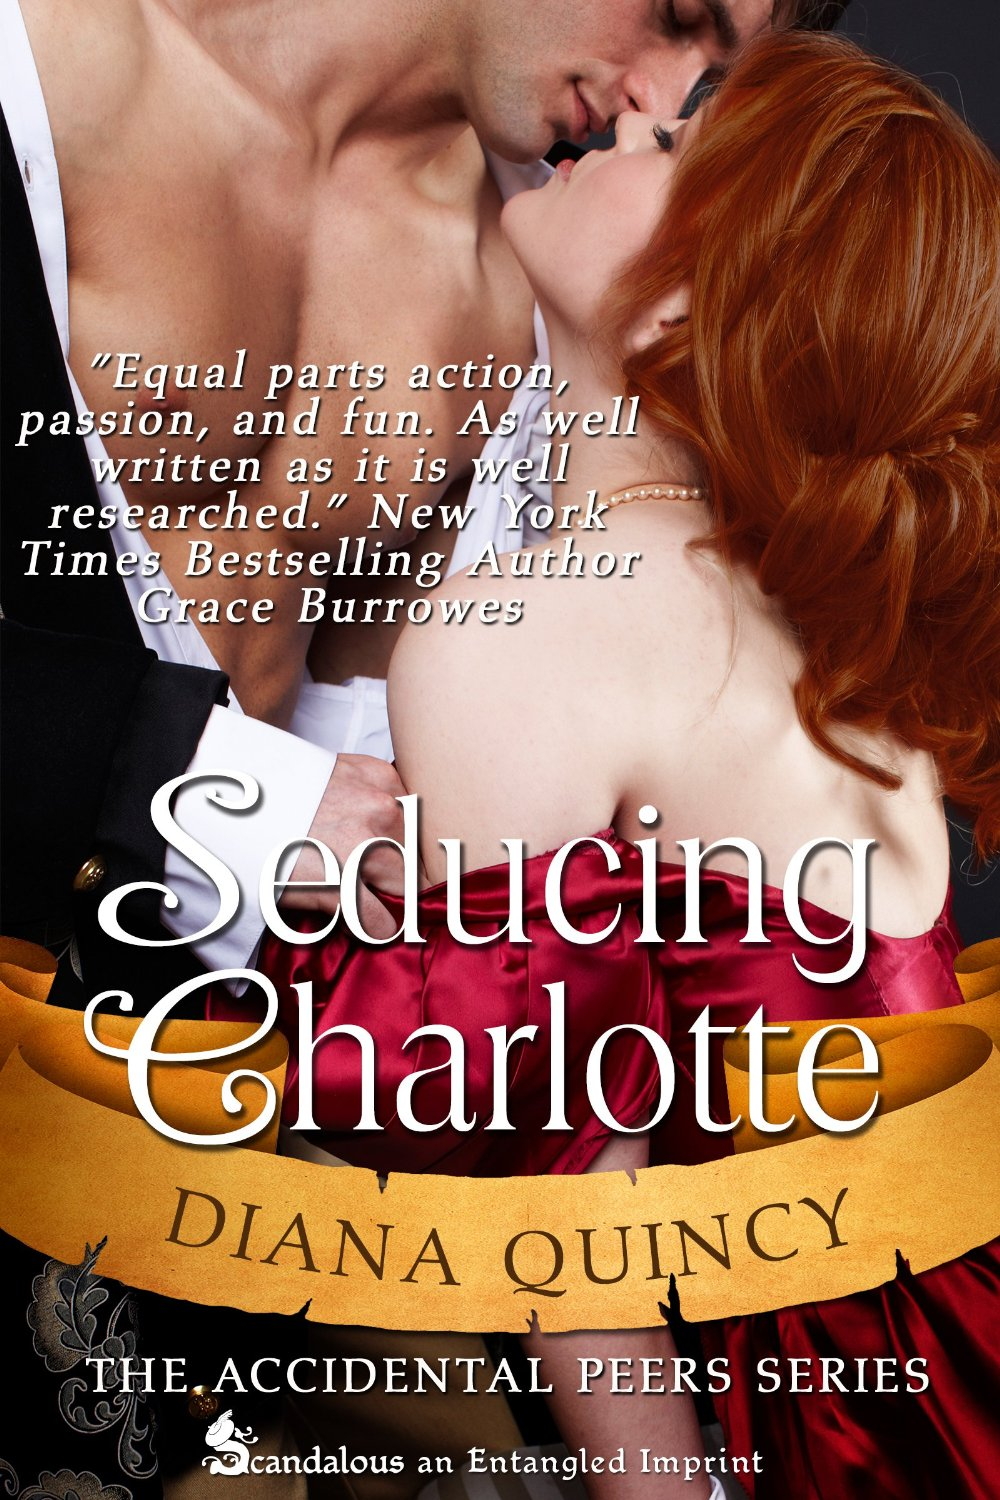 Seducing Charlotte's original